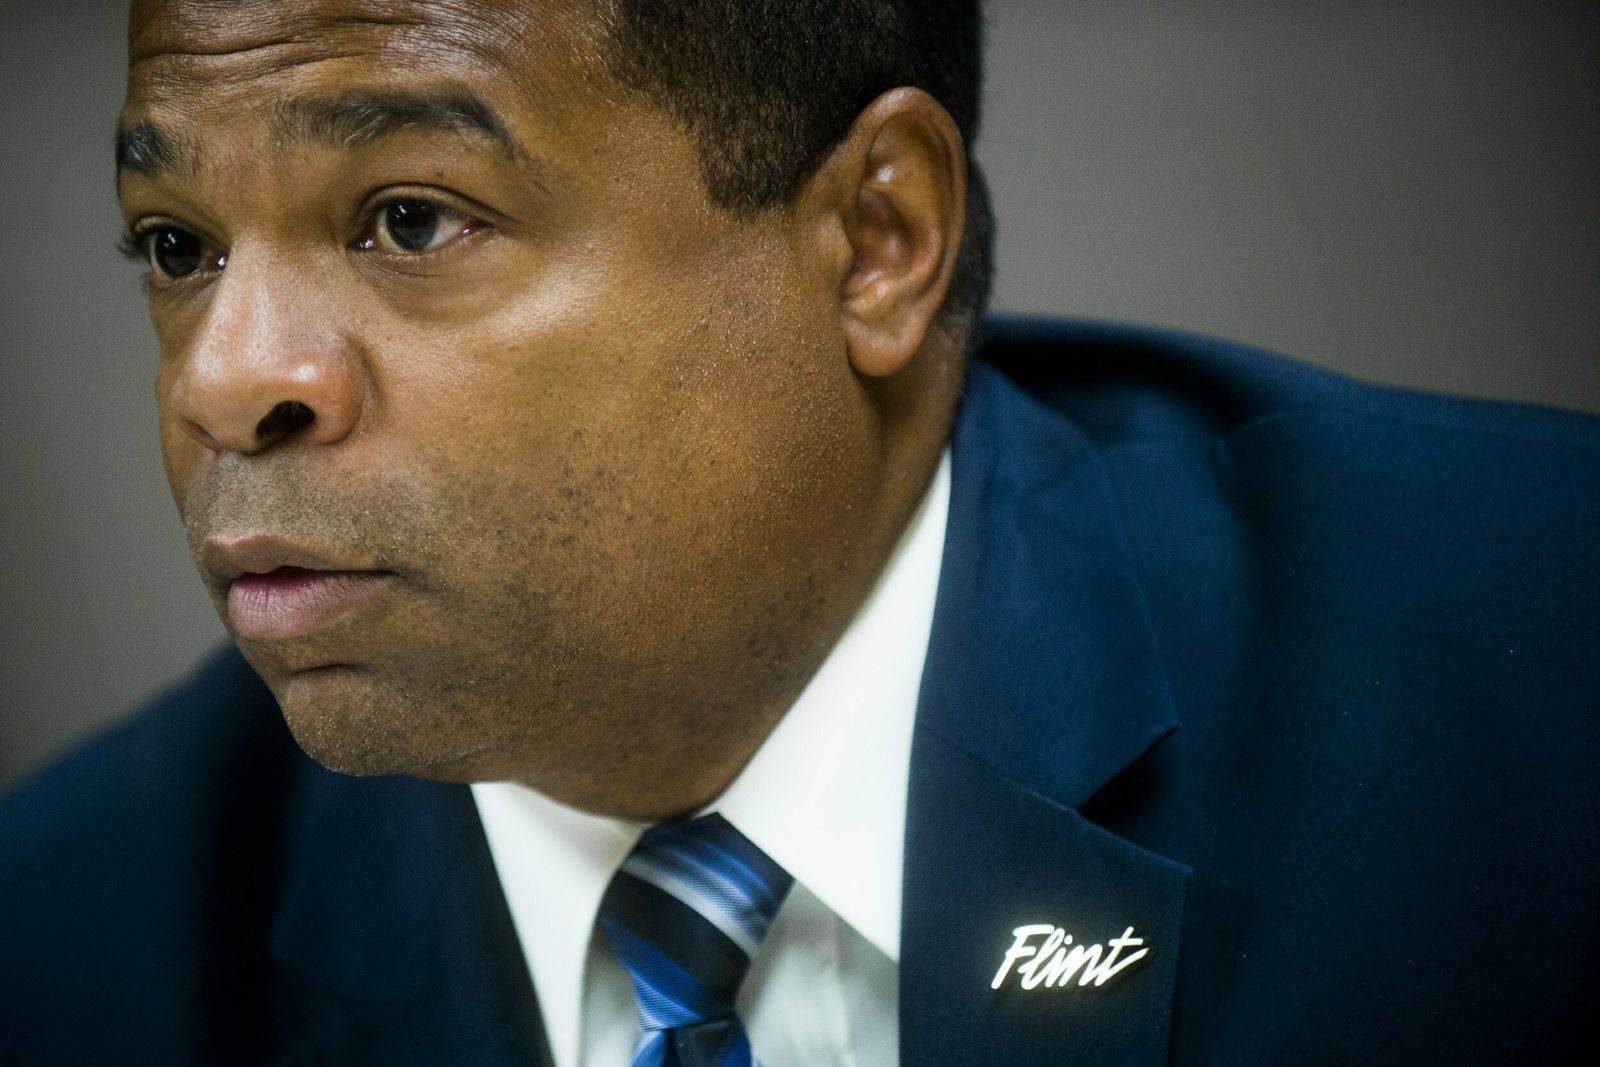 FILE - In this Oct. 12, 2015, file photo Flint, Mich., Director of Public Works Howard Croft speaks about the two-week target for switching Flint's water source back to Detroit during a news conference at City Hall in Flint, Mich.{ } (Jake May/The Flint Journal-MLive.com via AP, File)